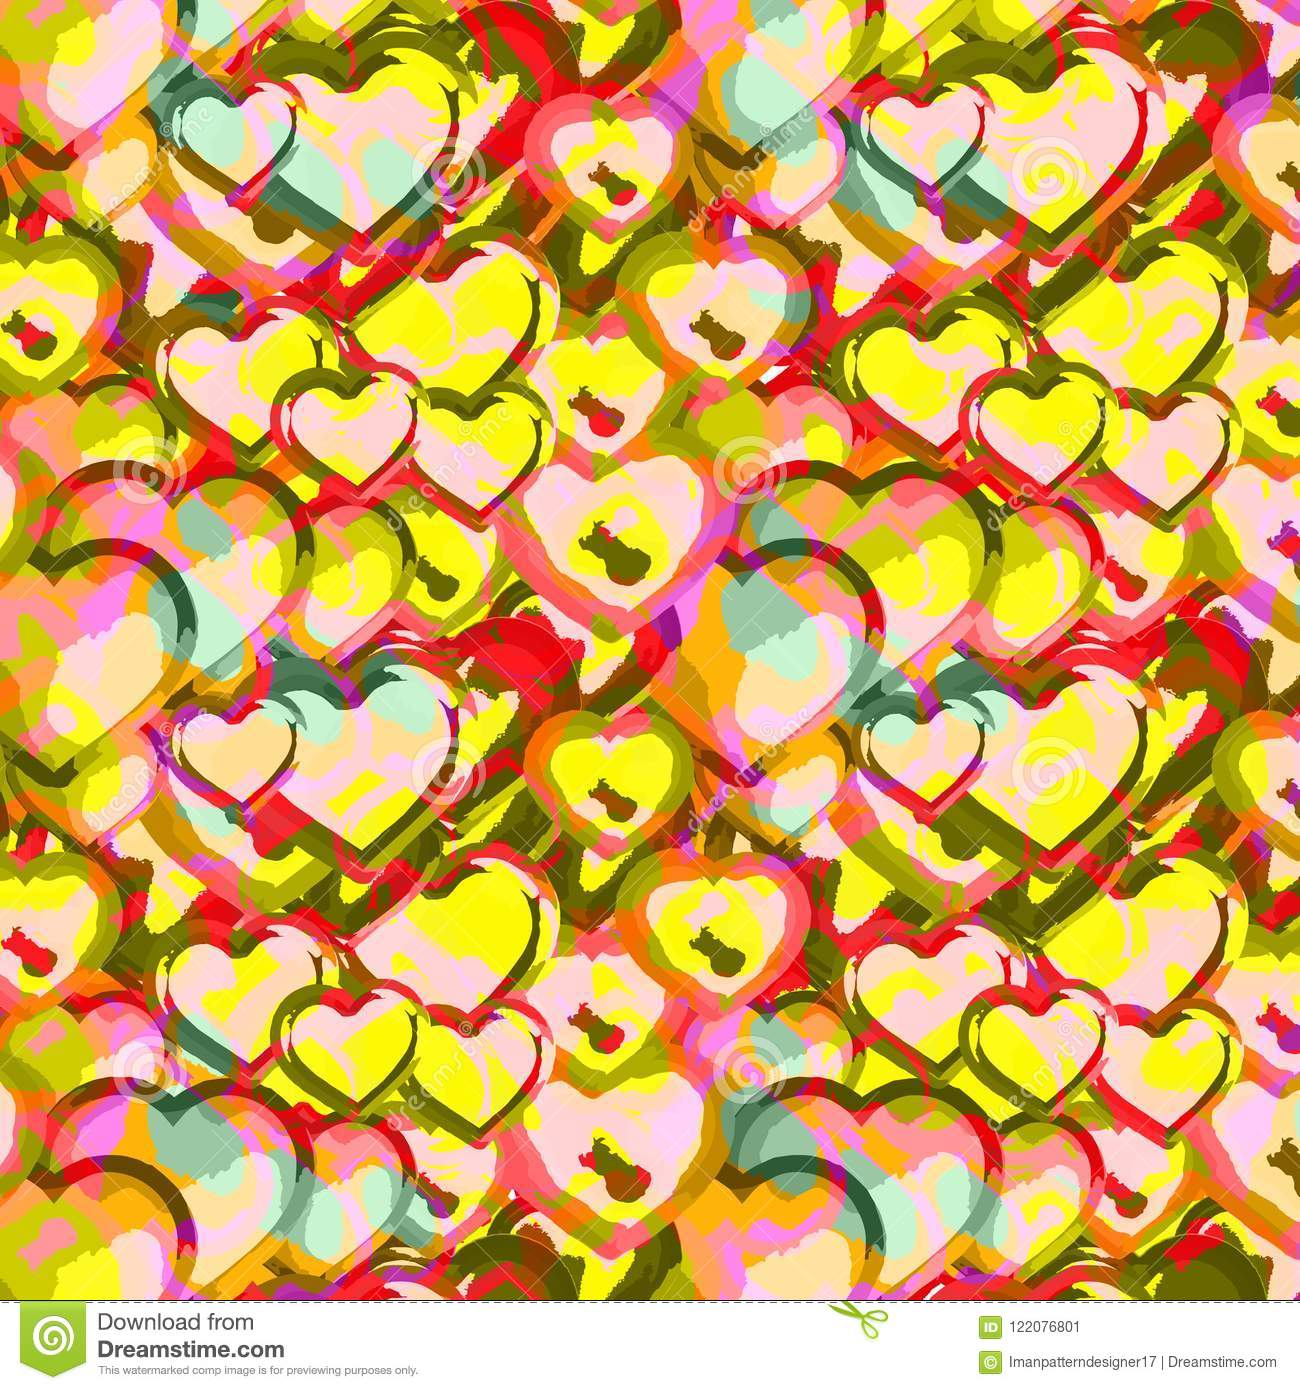 Vector Repeating Pattern Of Colorful Abstract Heart Shapes